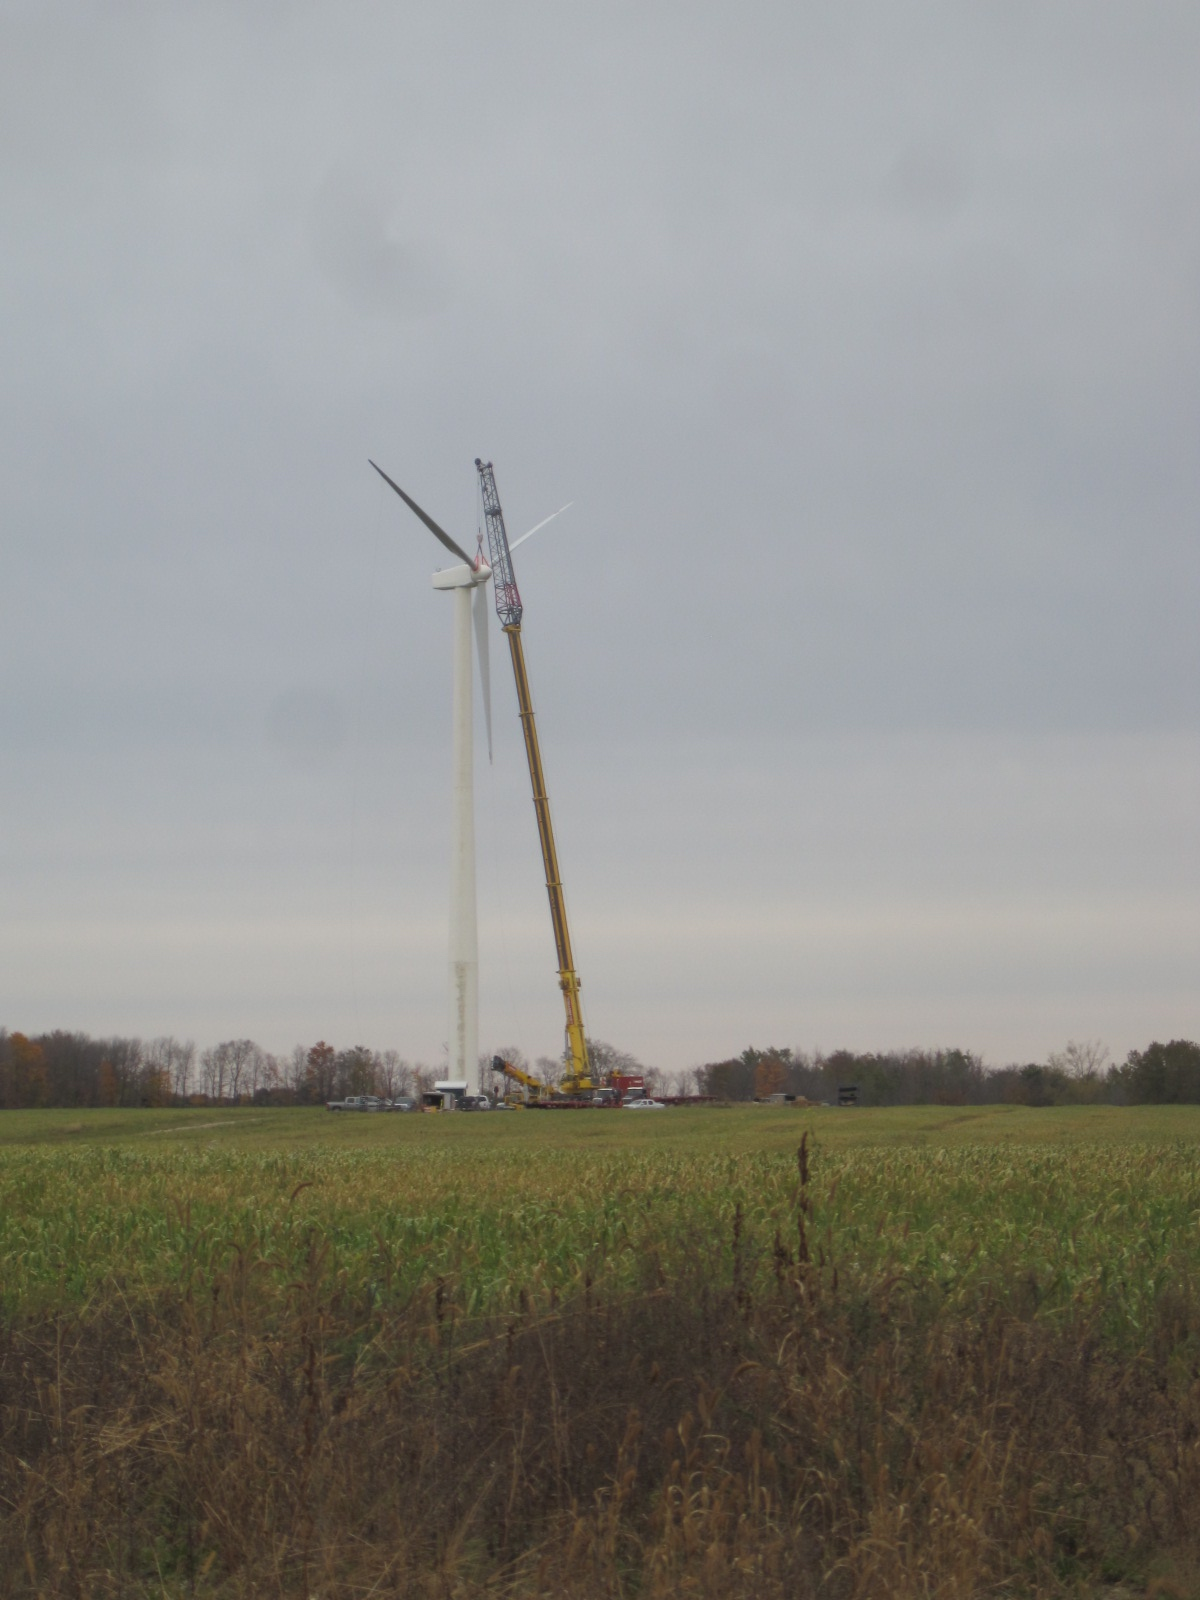 The Moorefield turbine hub and blades being installed, October 2016.